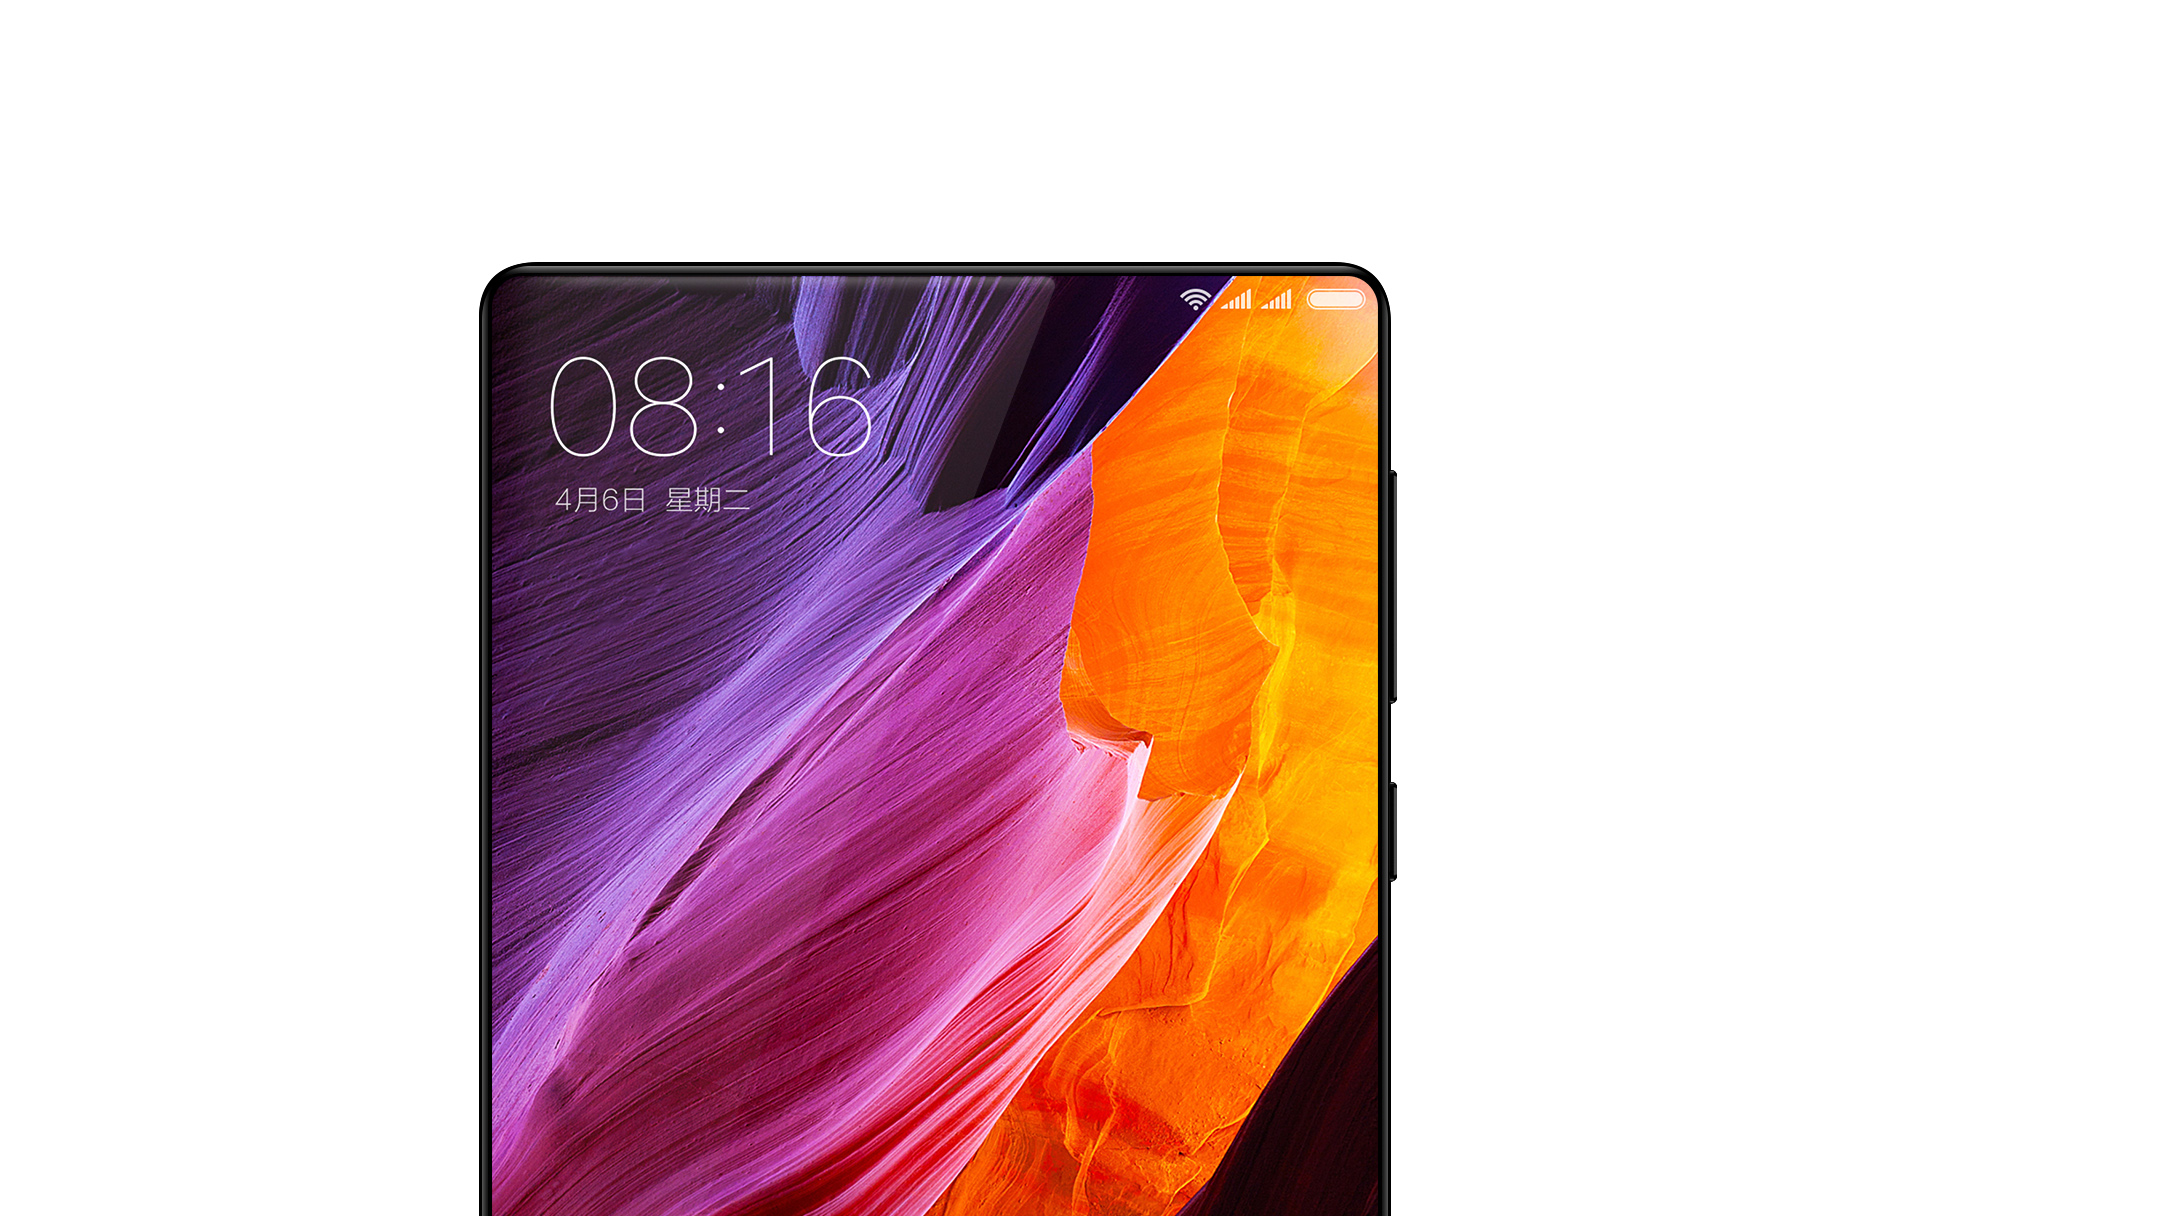 Mi Mix 2 India release confirmed by Xiaomi